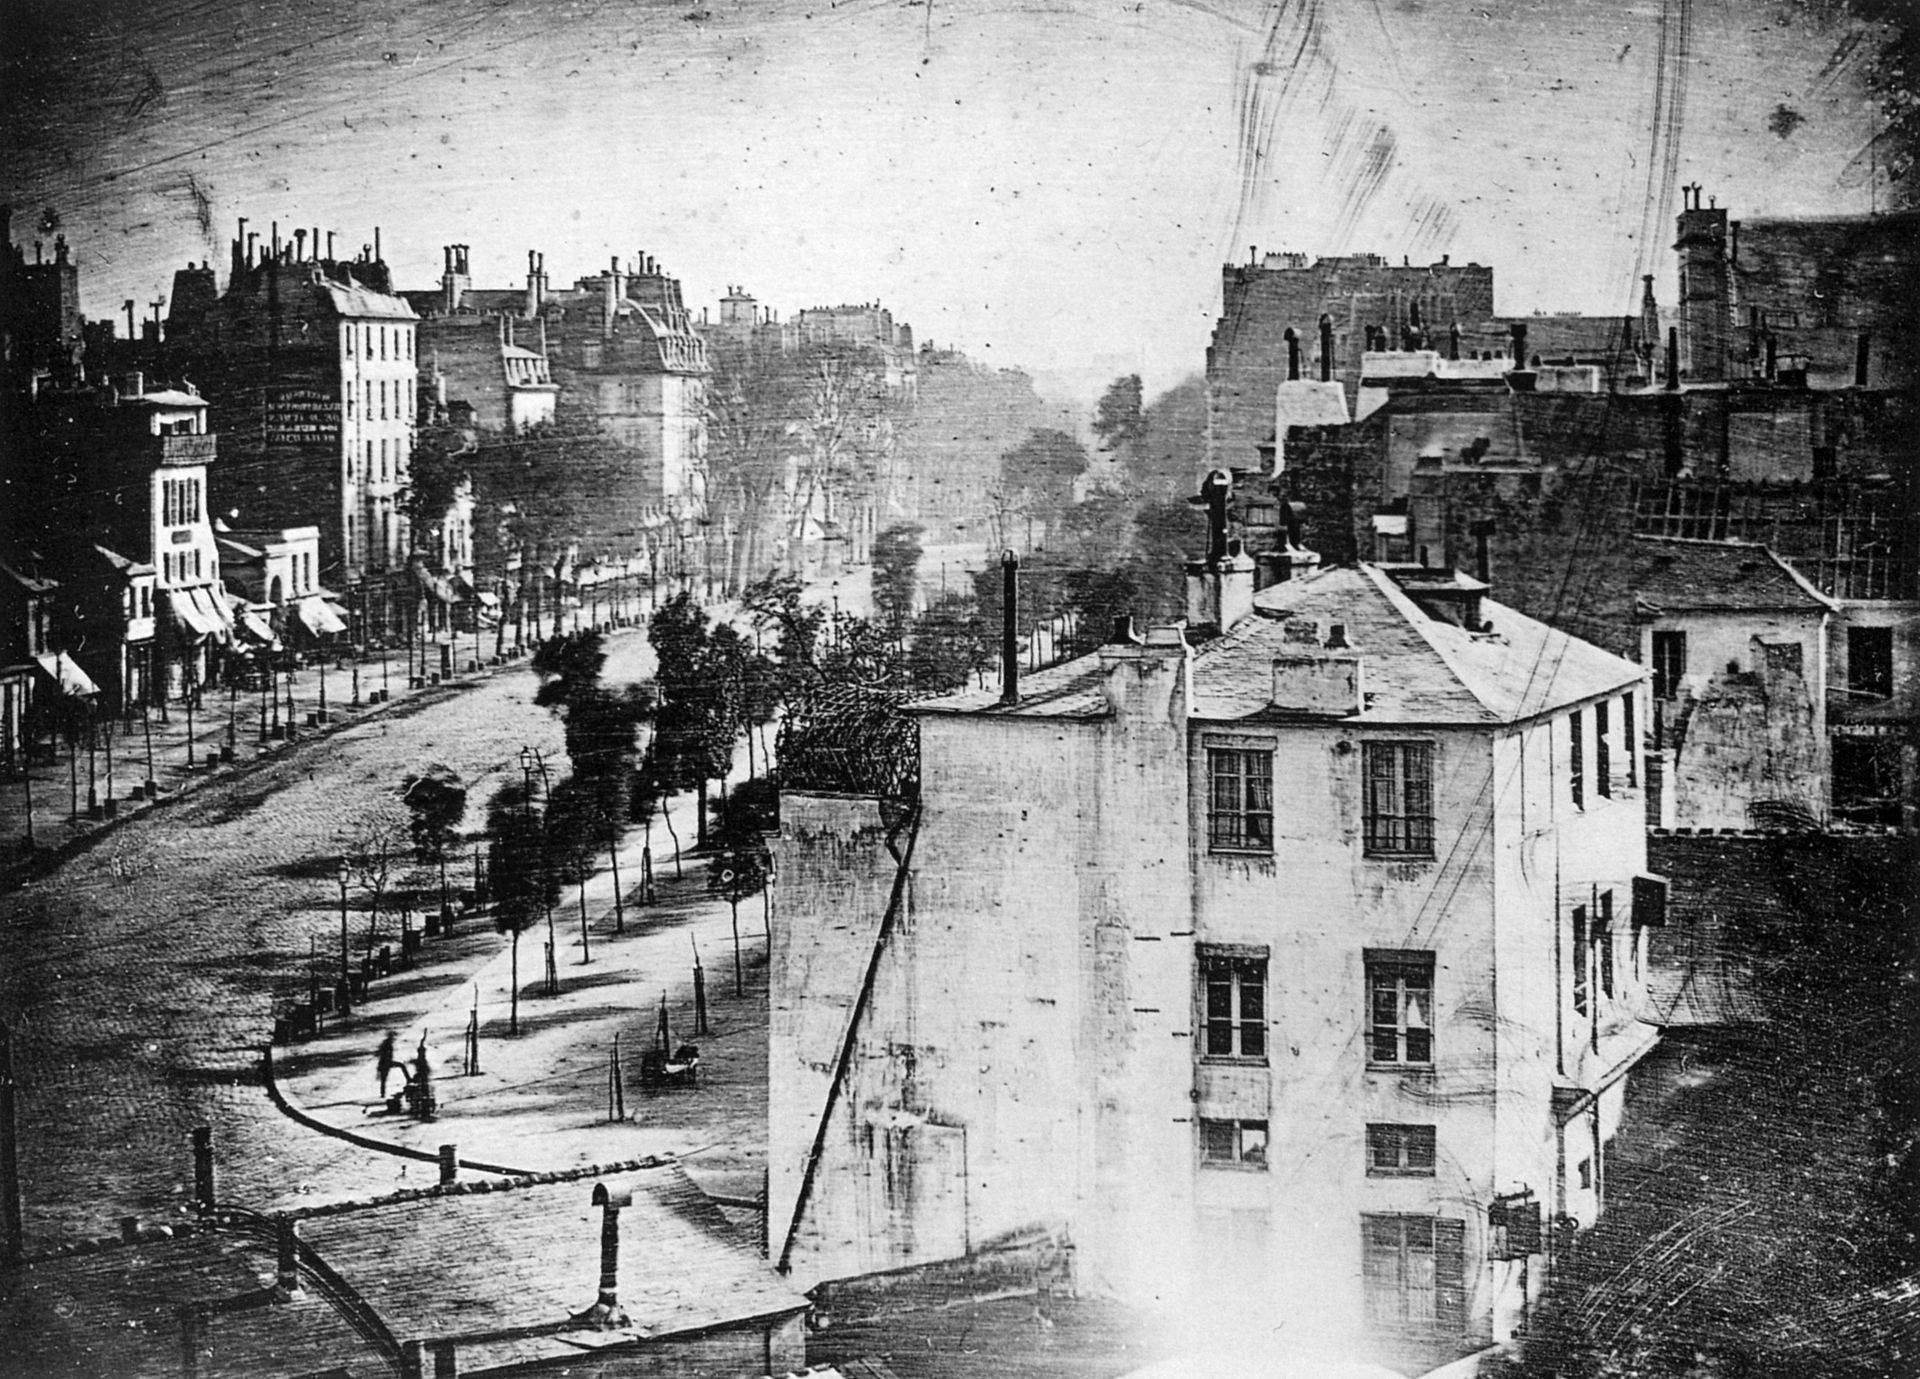 """Boulevard du Temple"", taken by Daguerre in 1838 in Paris, includes the earliest known candid photograph of a person"